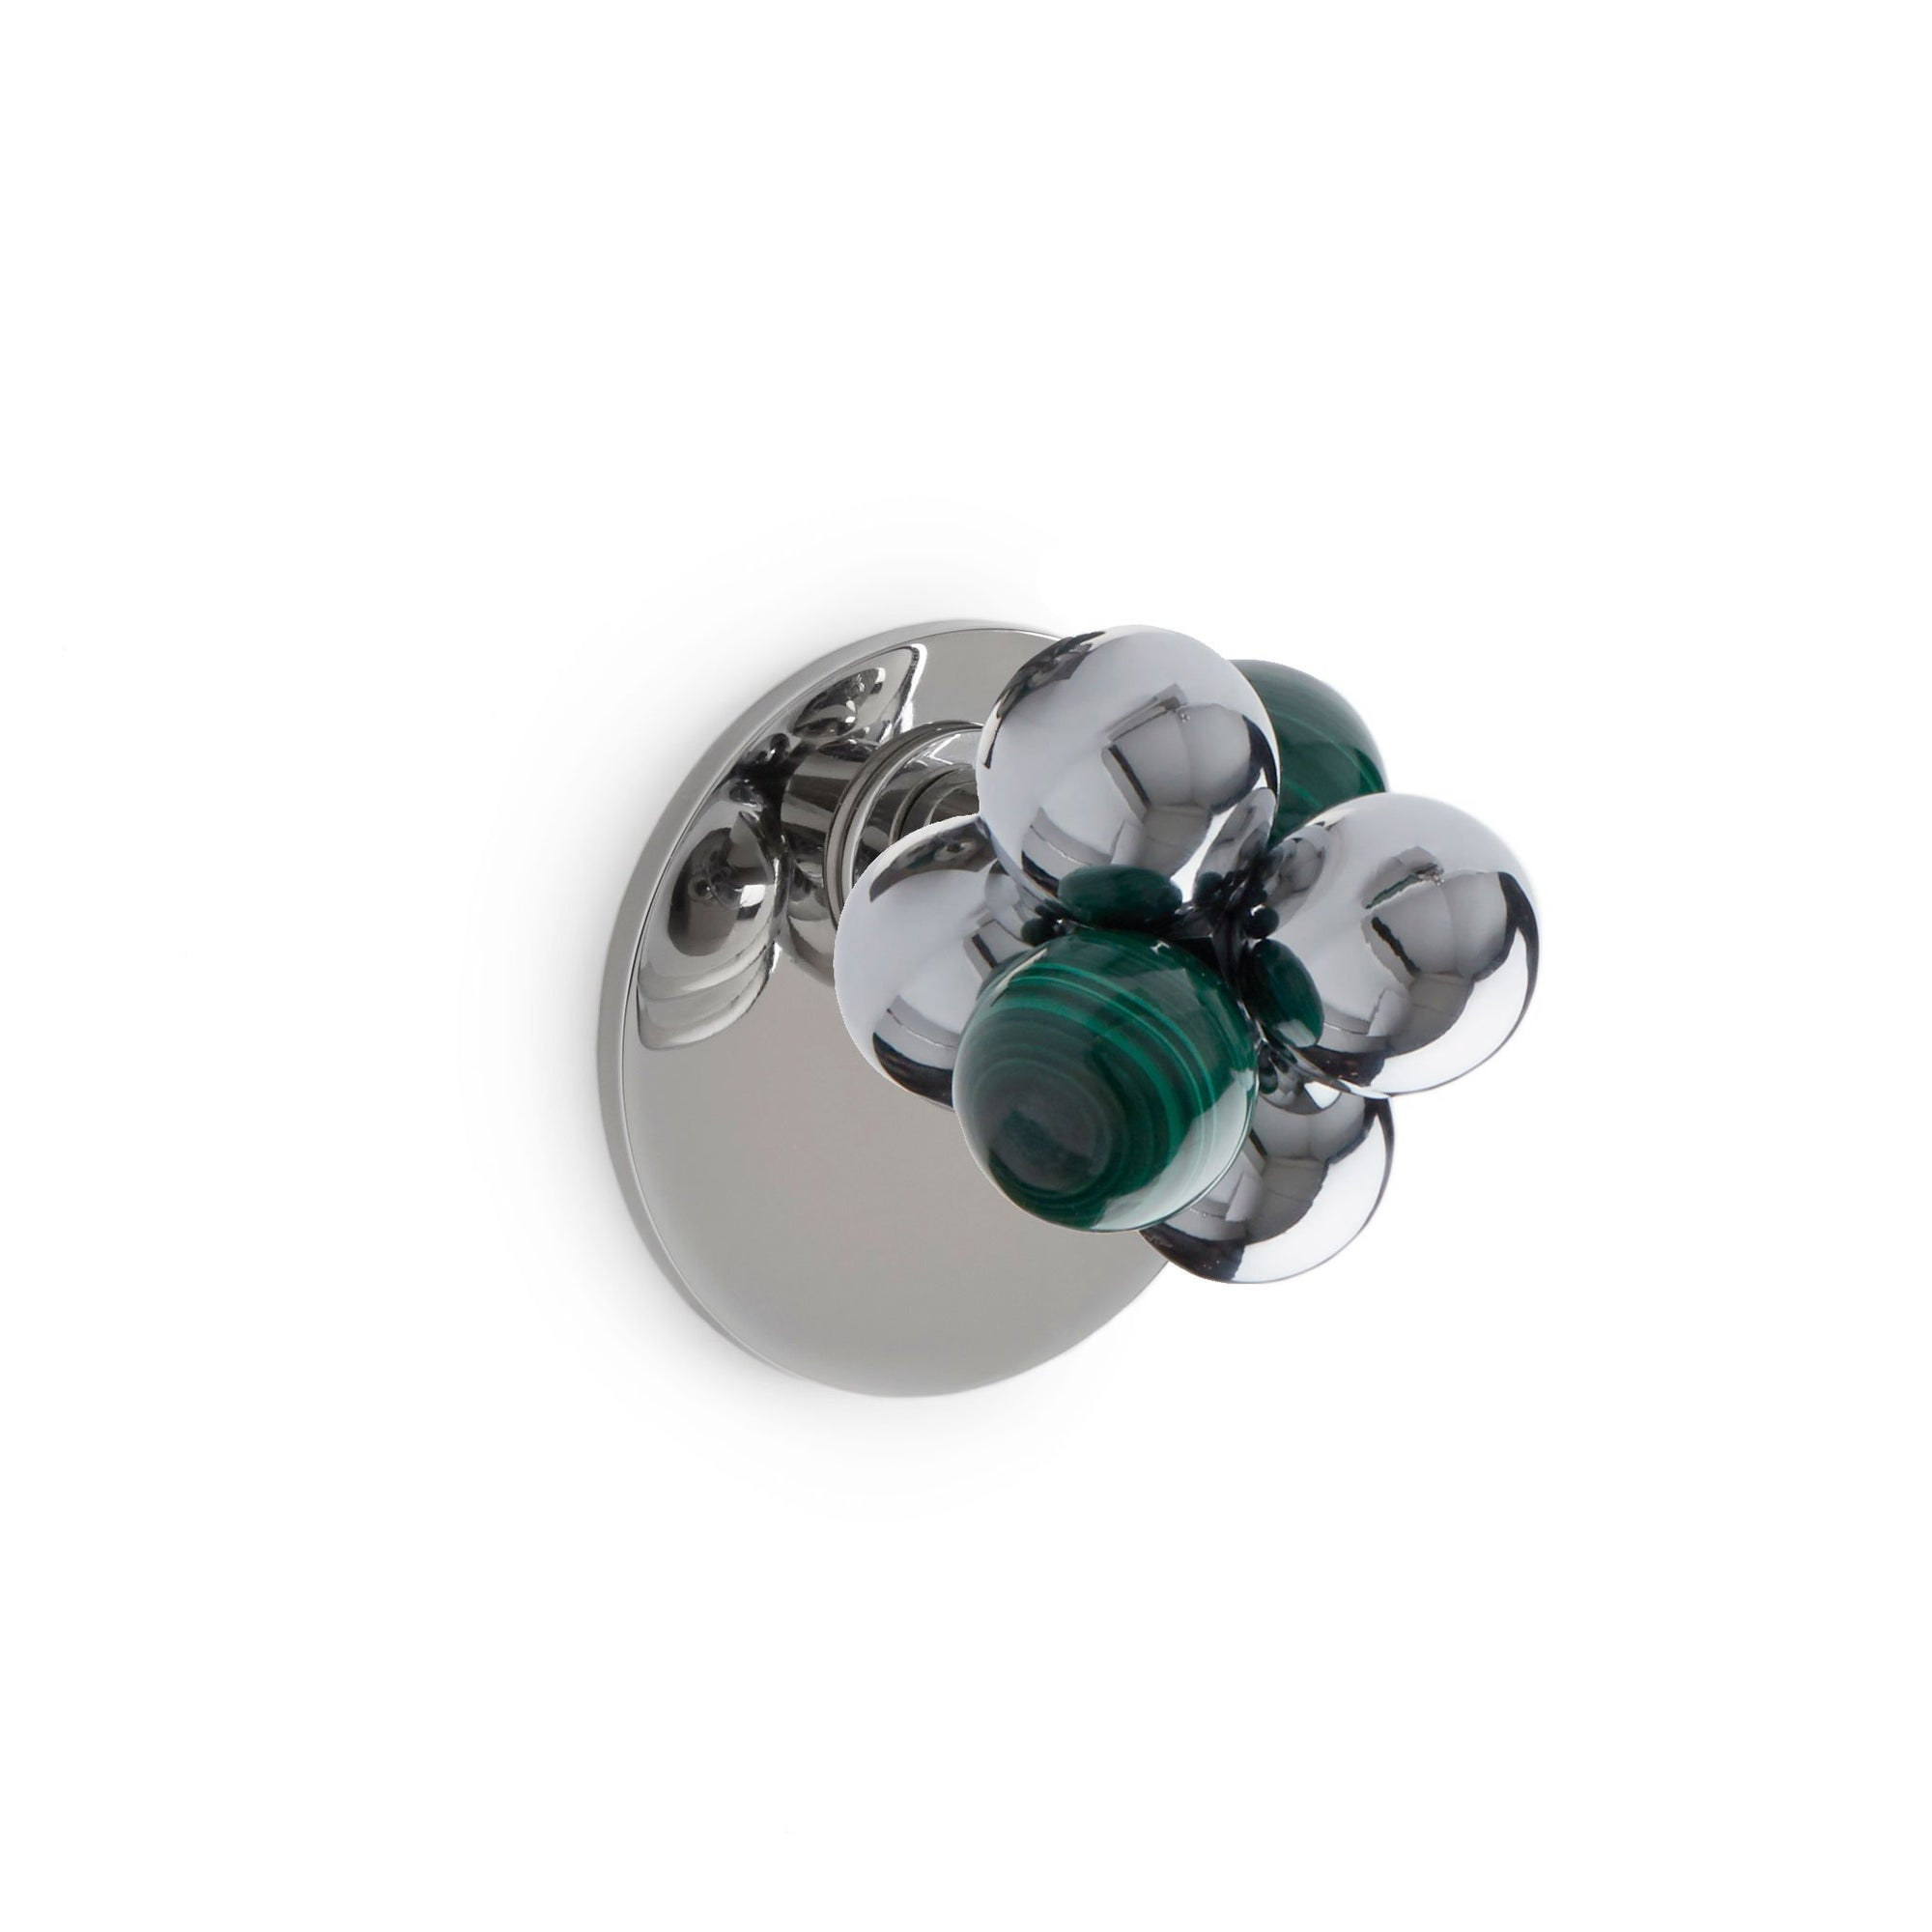 2105DOR-MALA-CP Sherle Wagner International The Stone Insert Molecule Door Knob in Polished Chrome metal finish